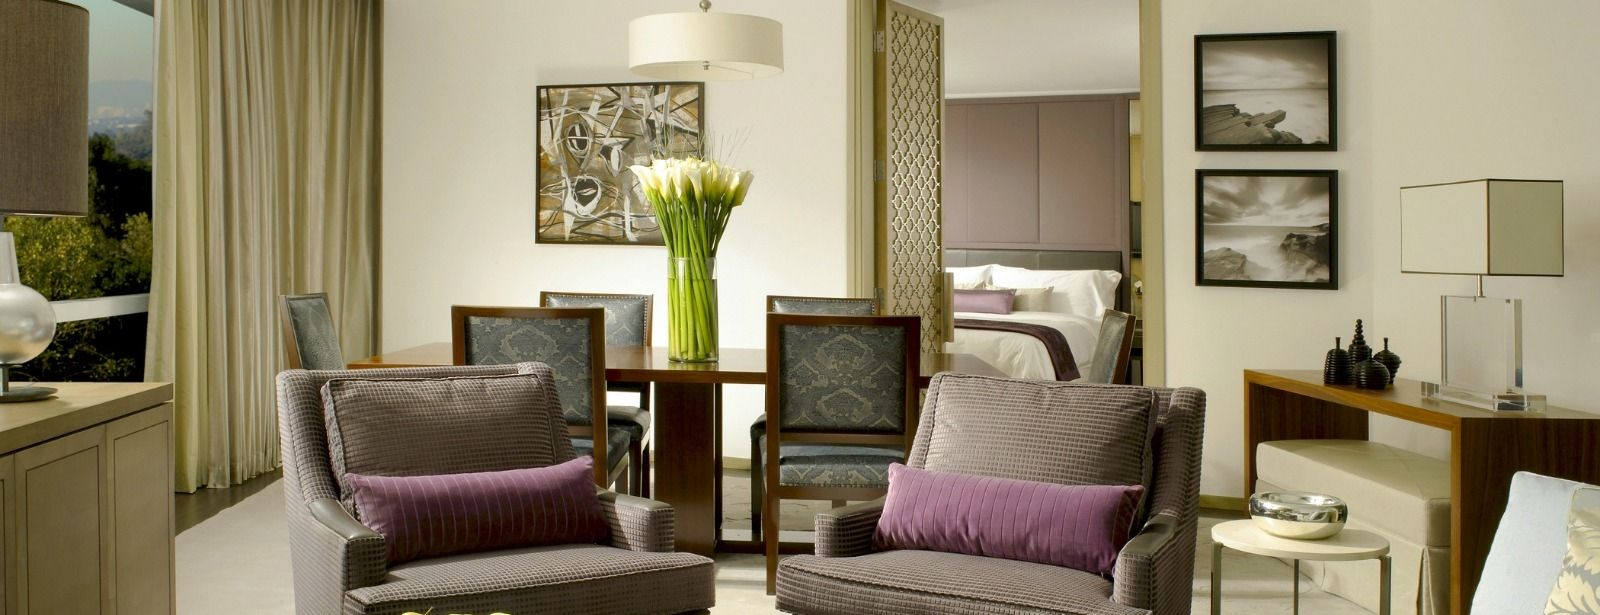 Luxury Suite - St. Regis Mexico City